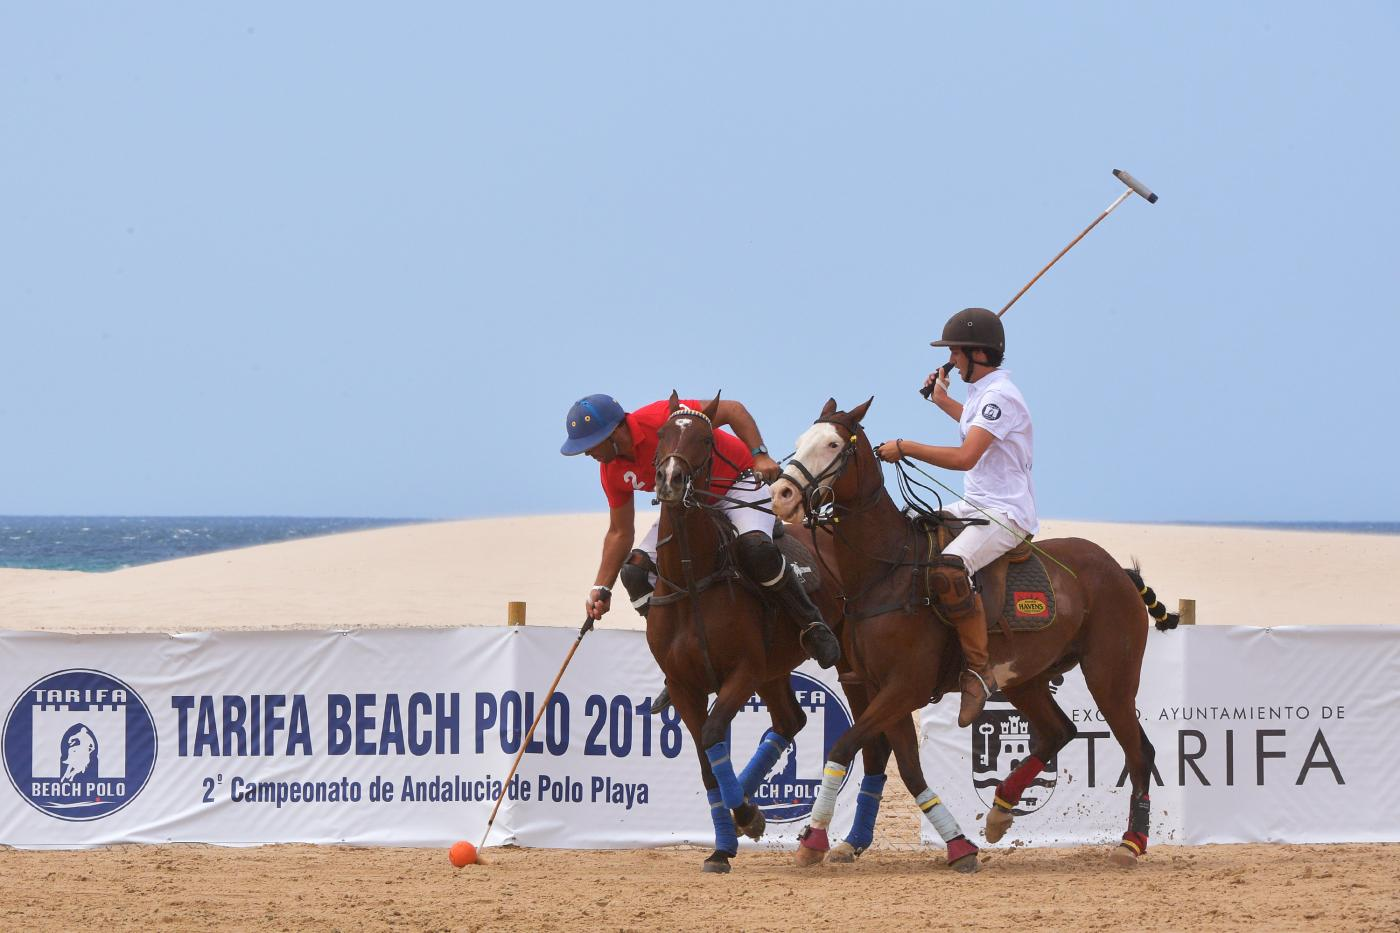 Tarifa Beach Polo Cup 2018 3